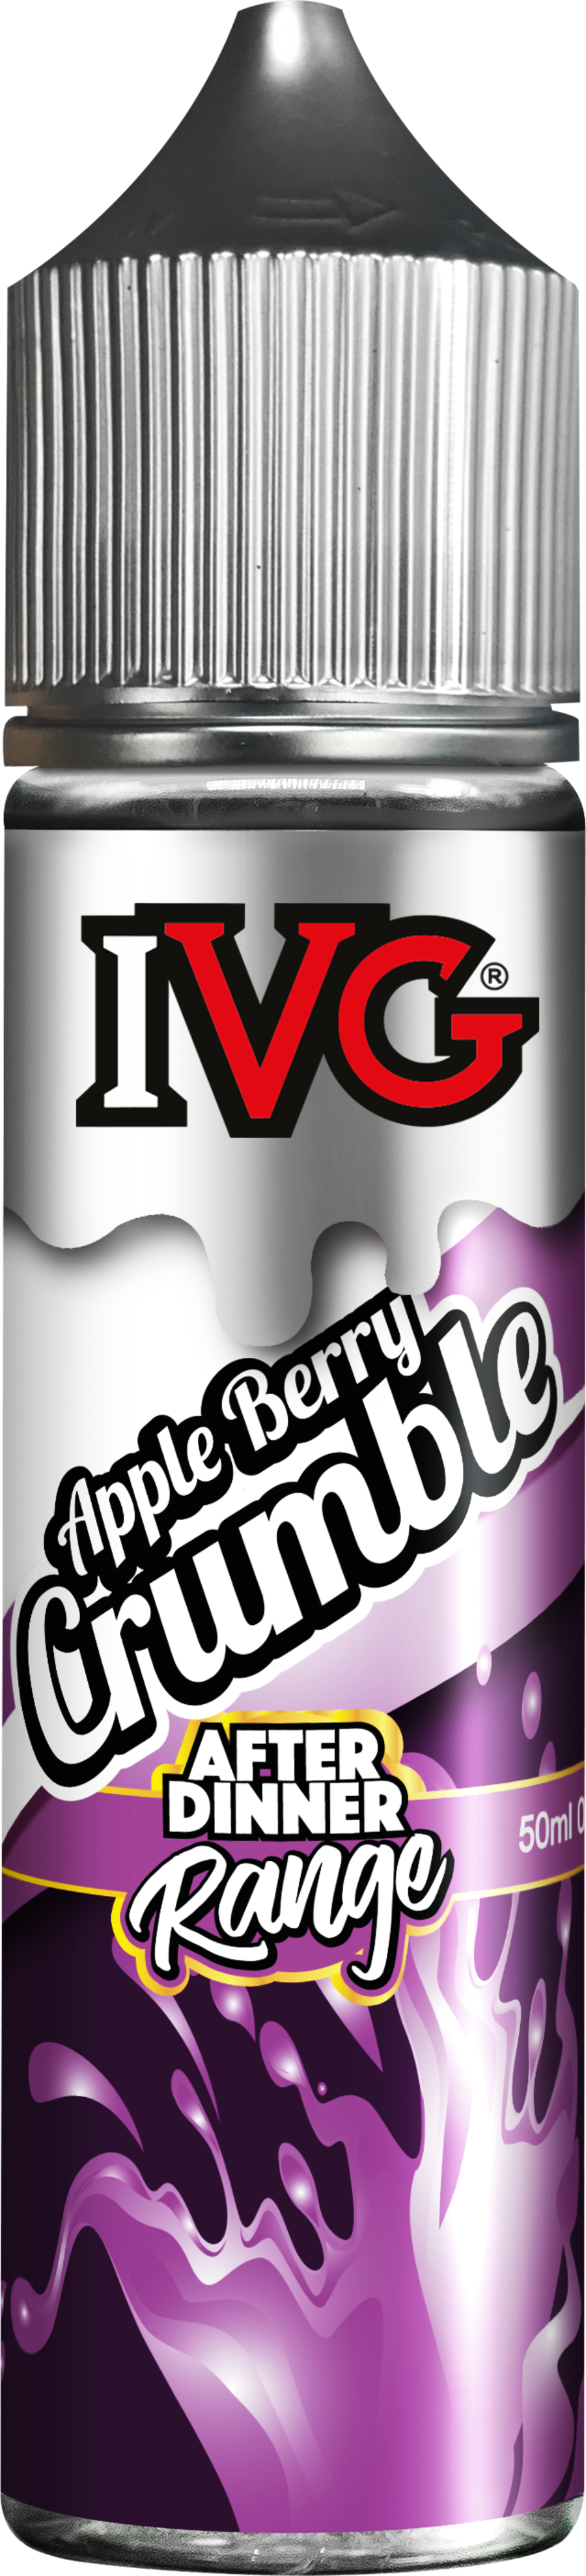 Appleberry Crumble By I VG After Dinner 50ml